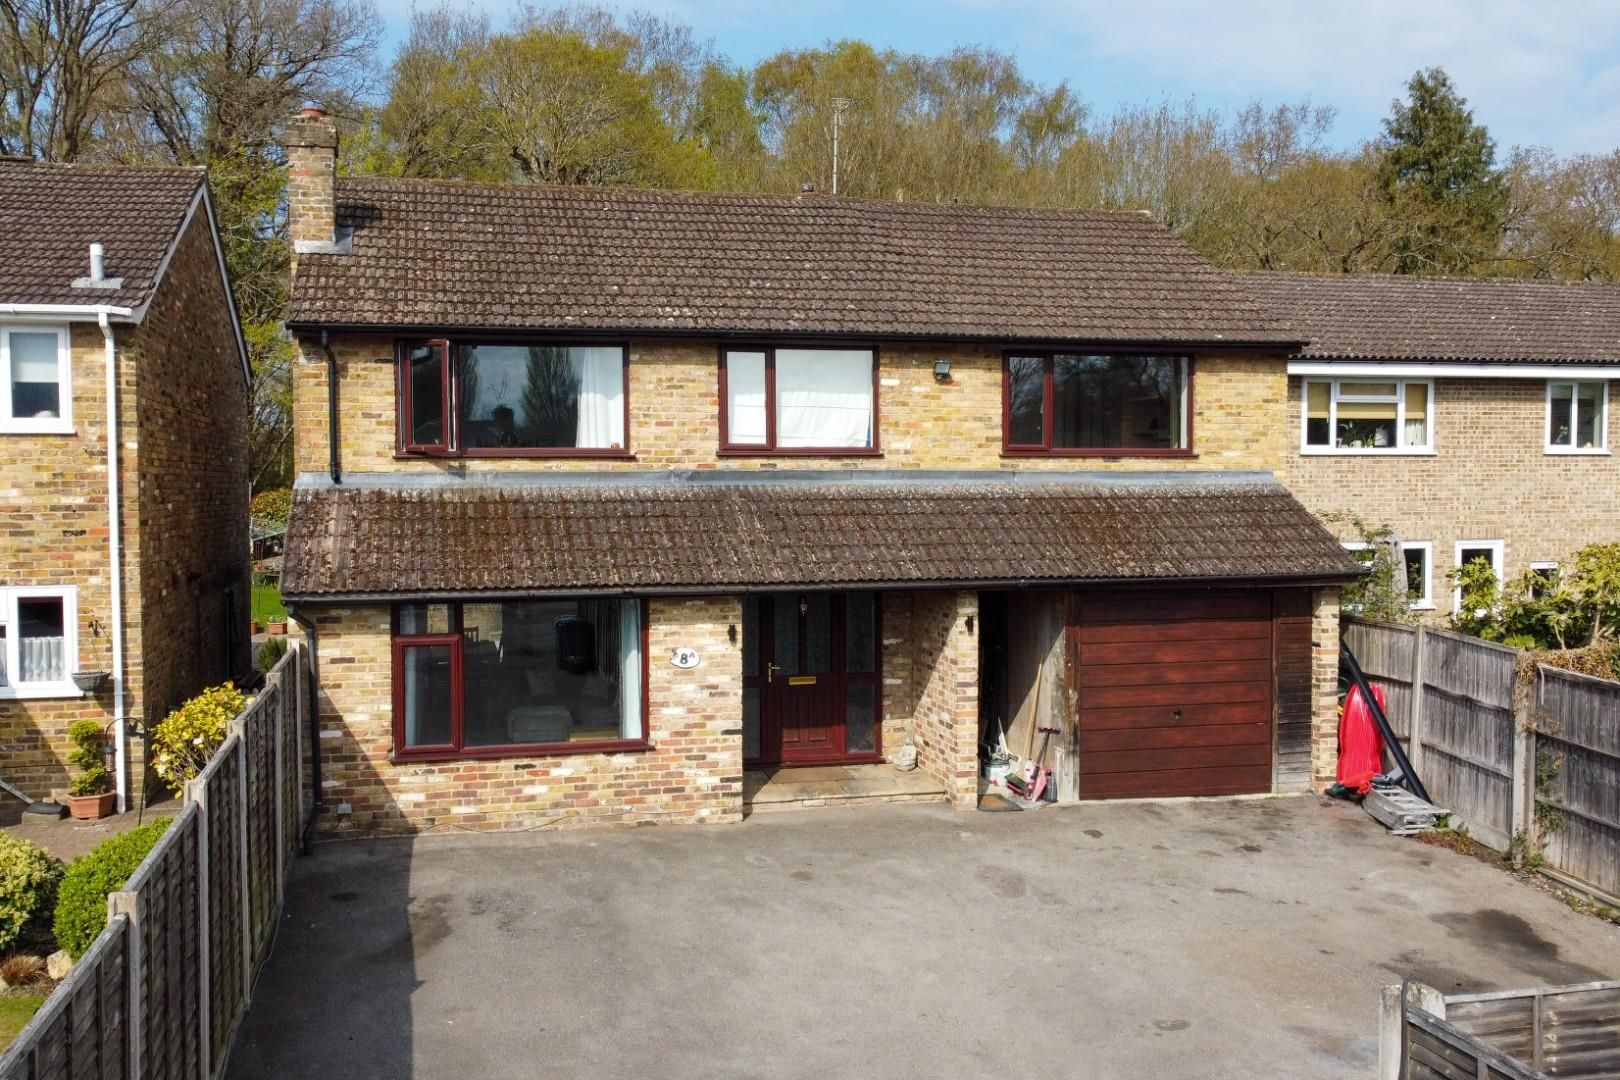 5 bed detached for sale in Blackwater, GU17